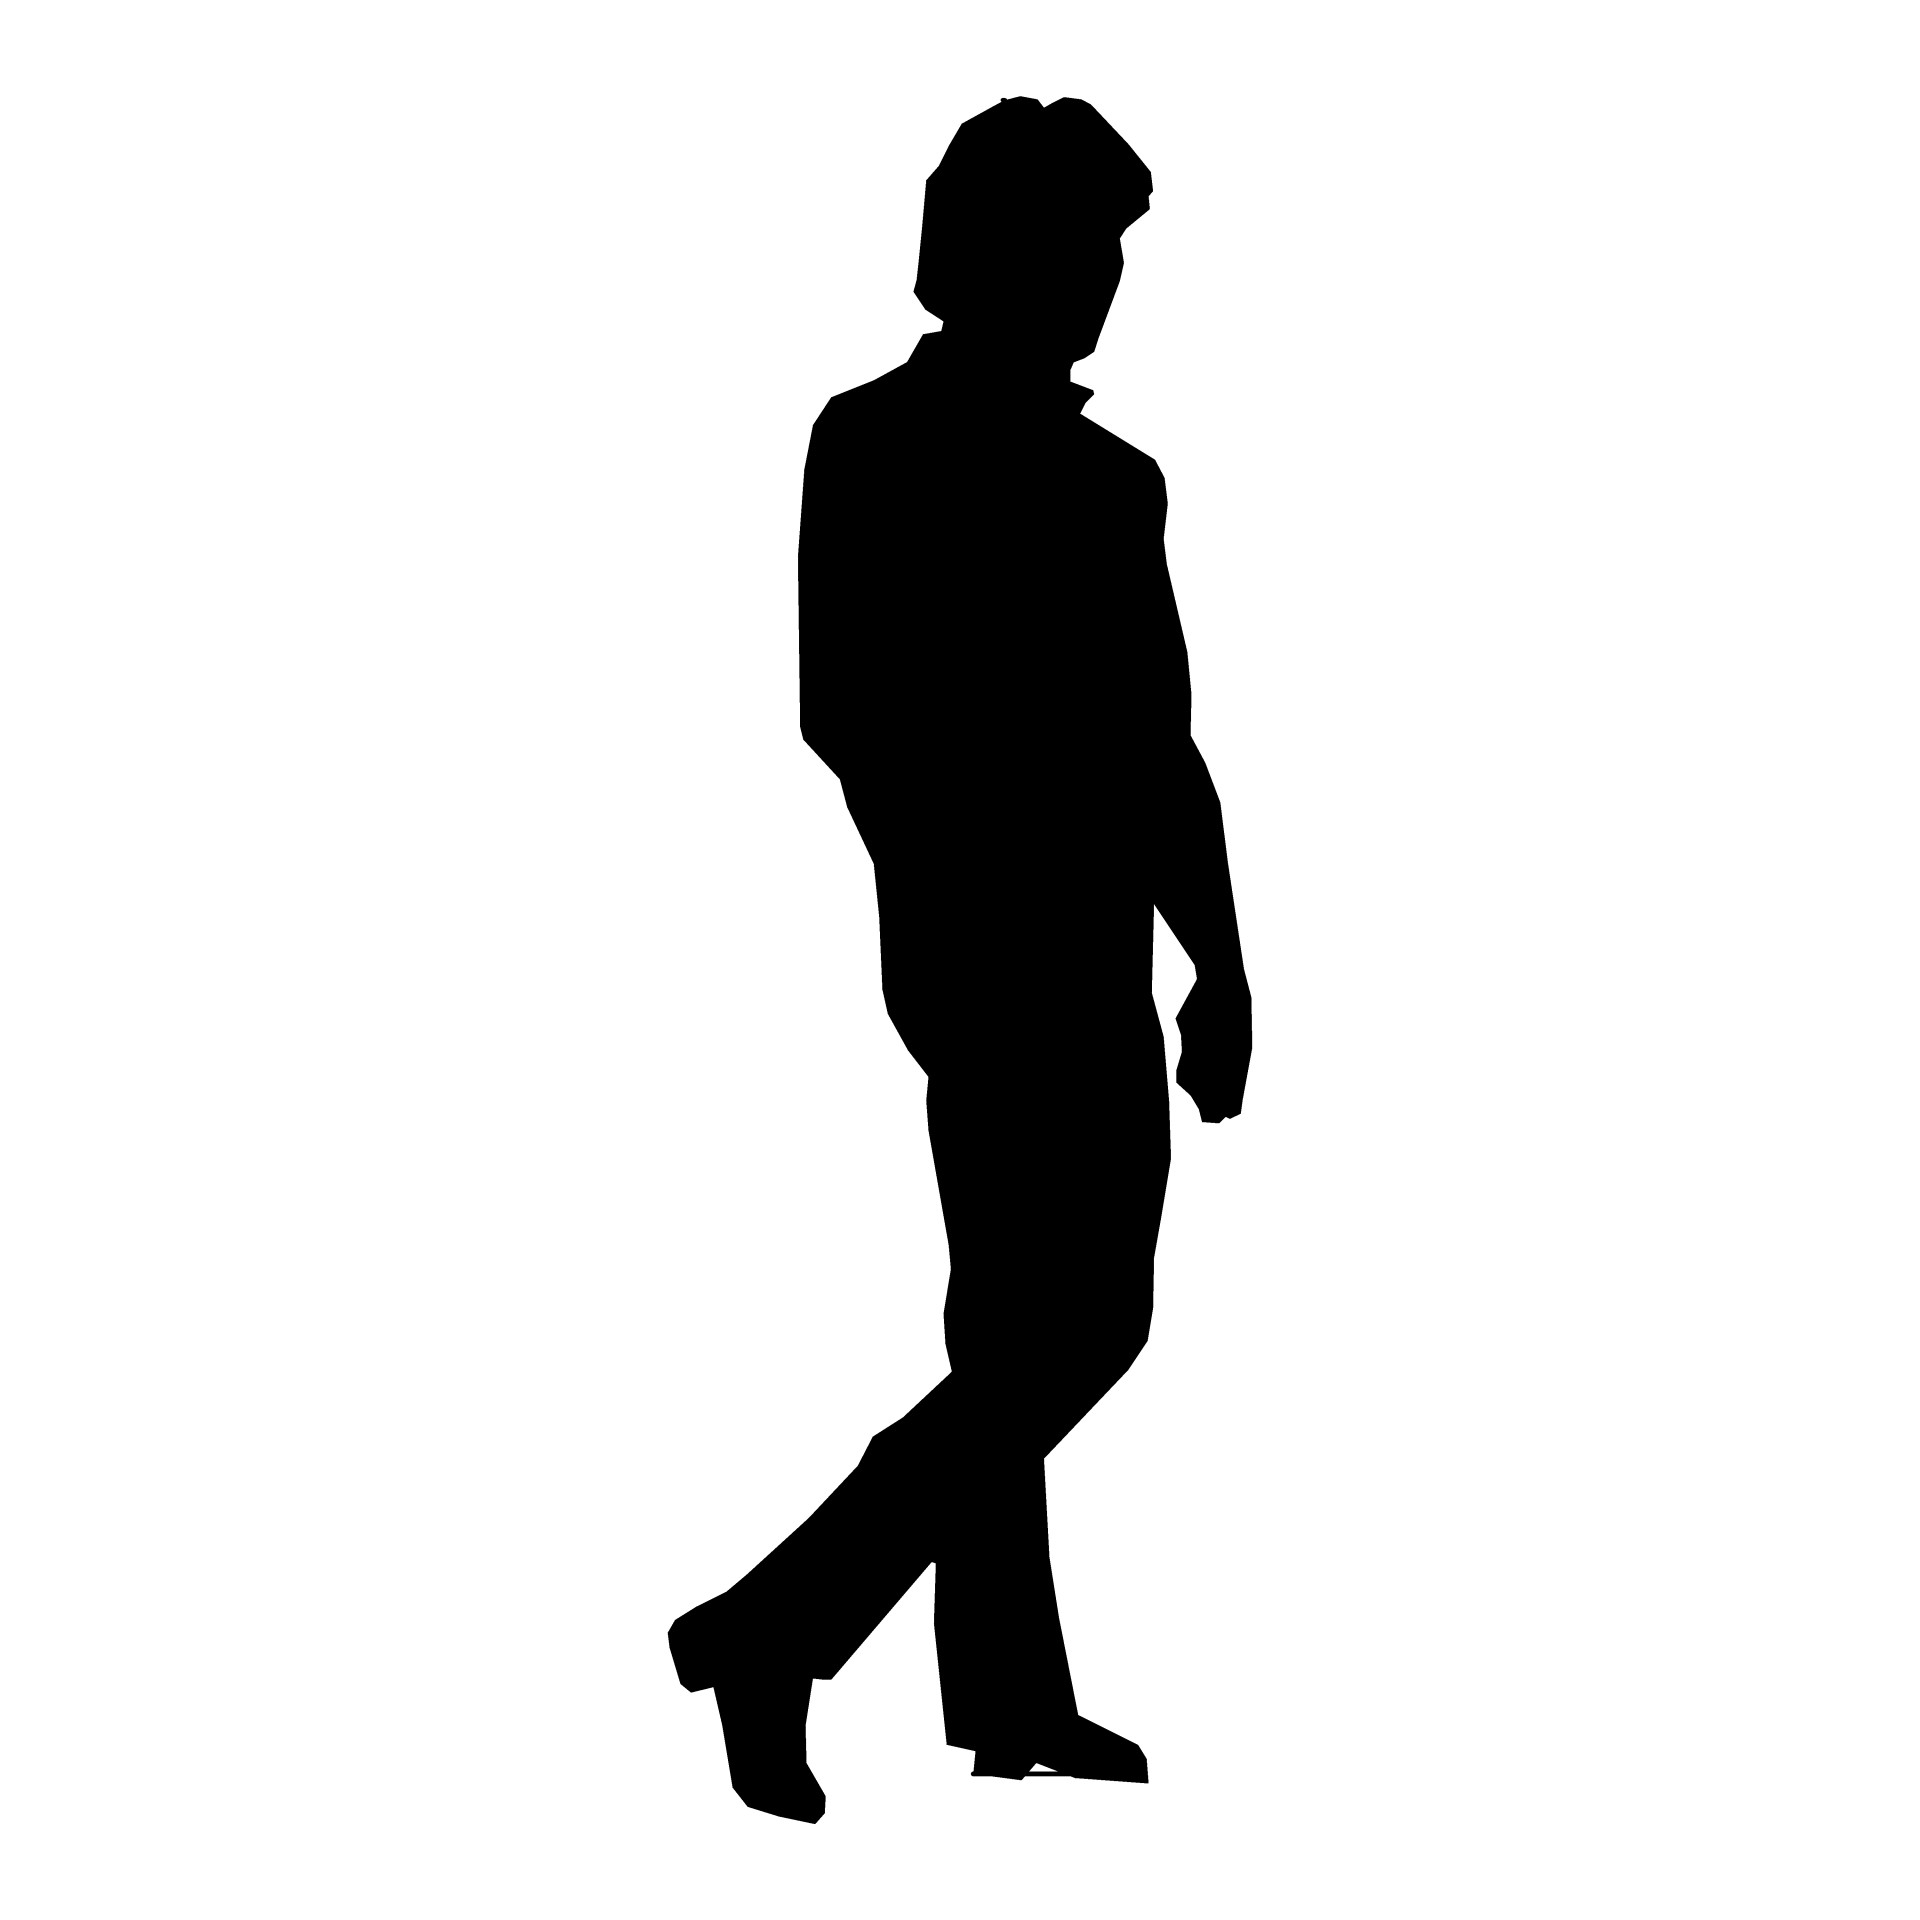 1920x1920 Silhouette Man Walking Free Stock Photo